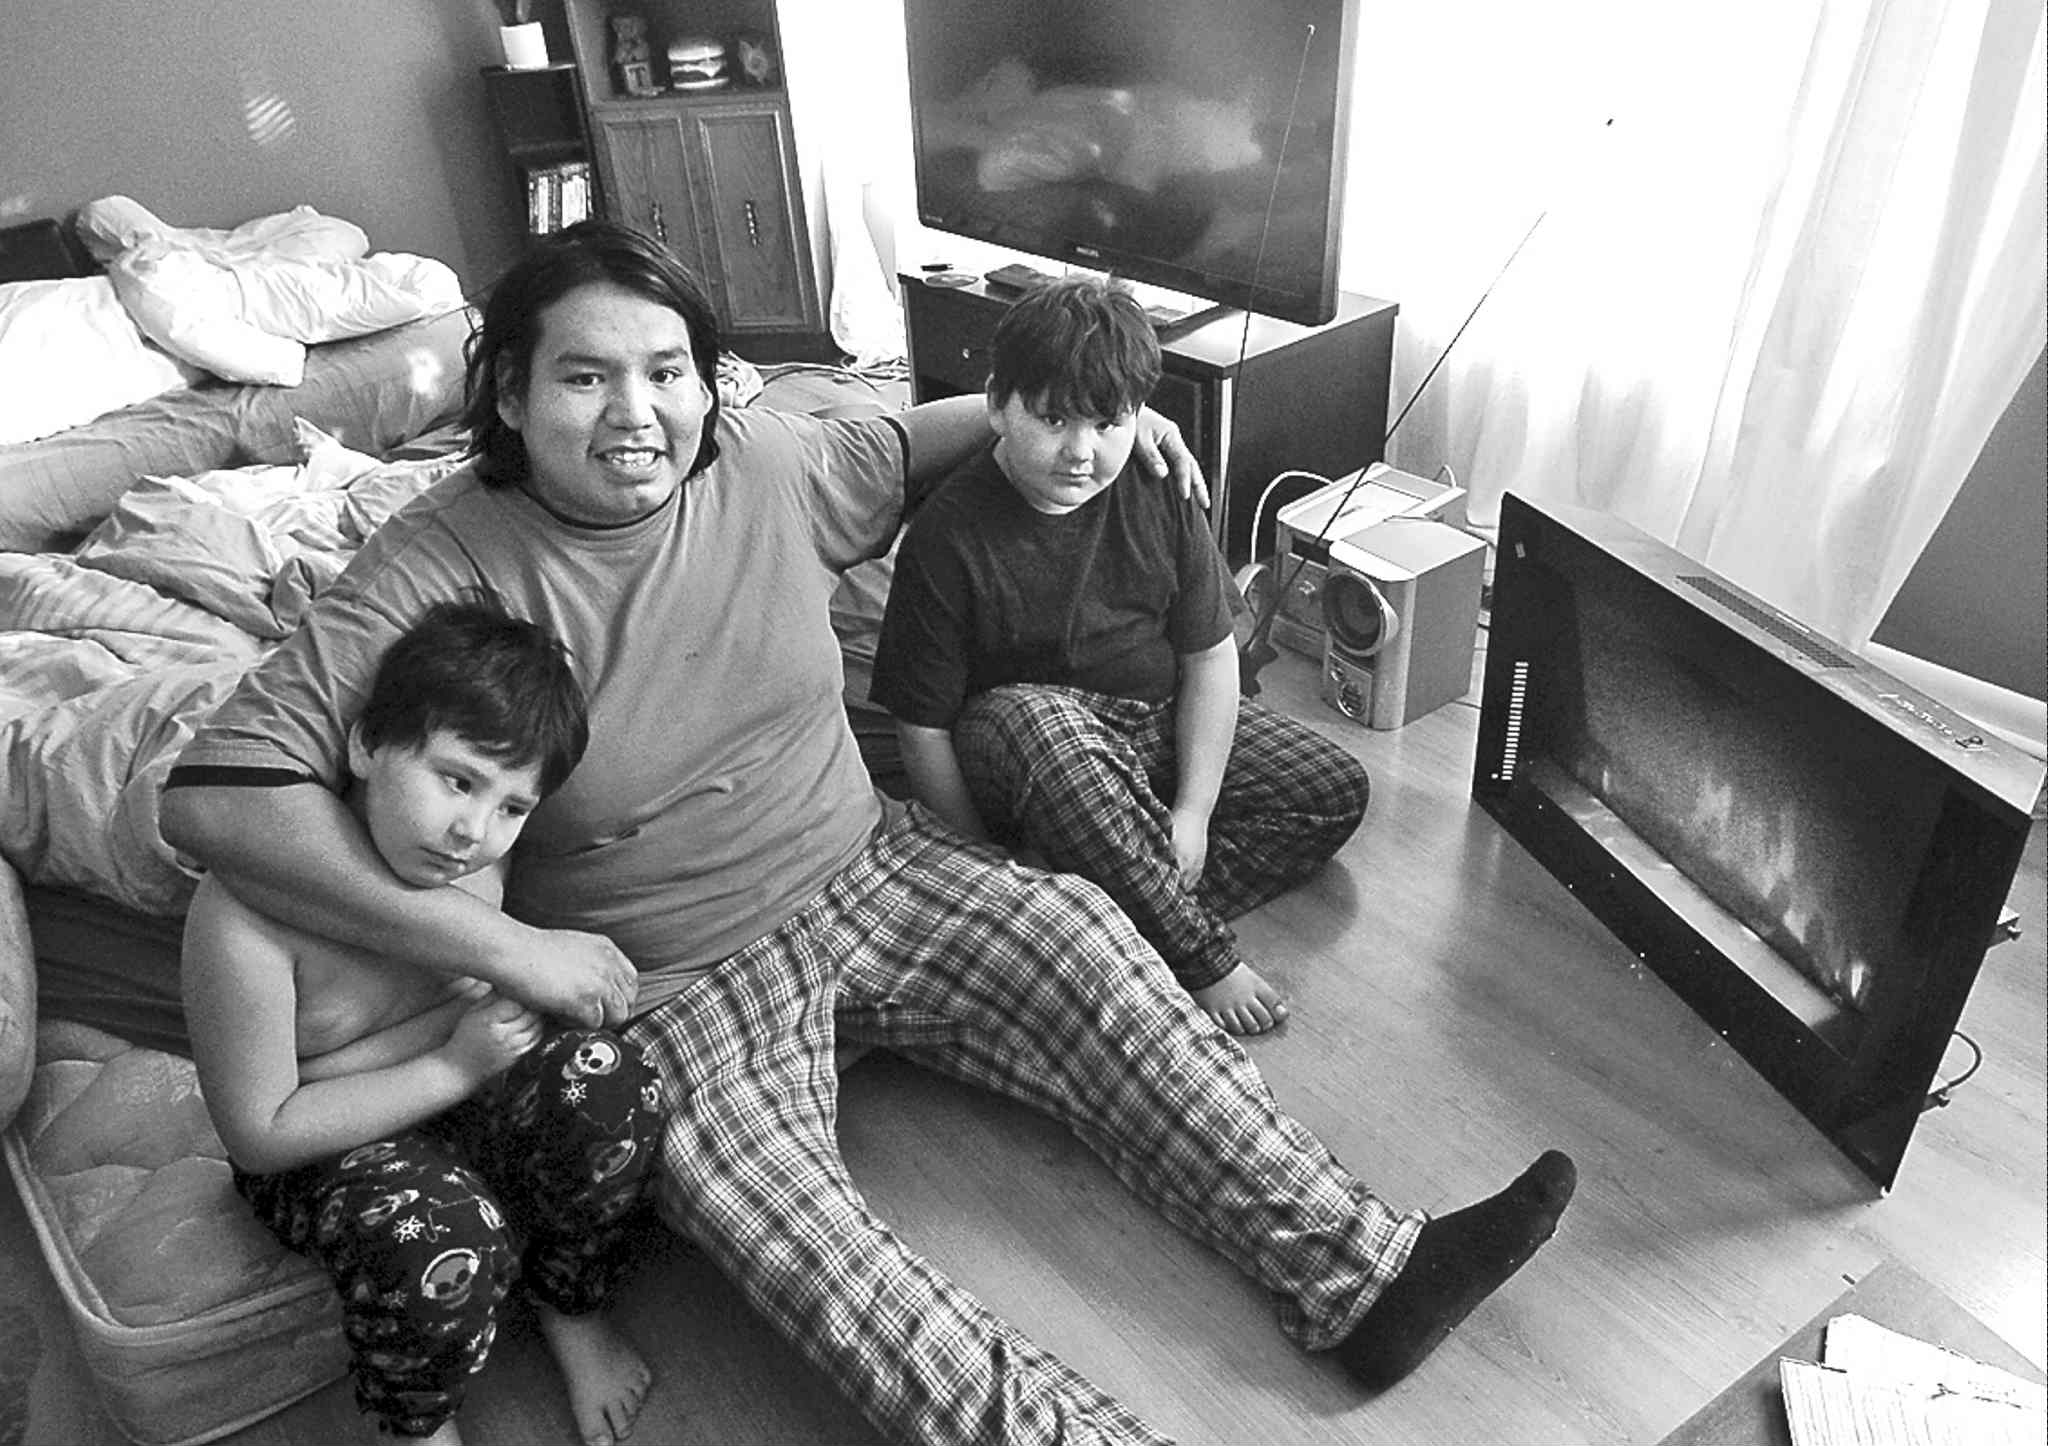 Derek Dowan and his sons, Dave (left) and Daniel, have been having sleepovers in the living room.